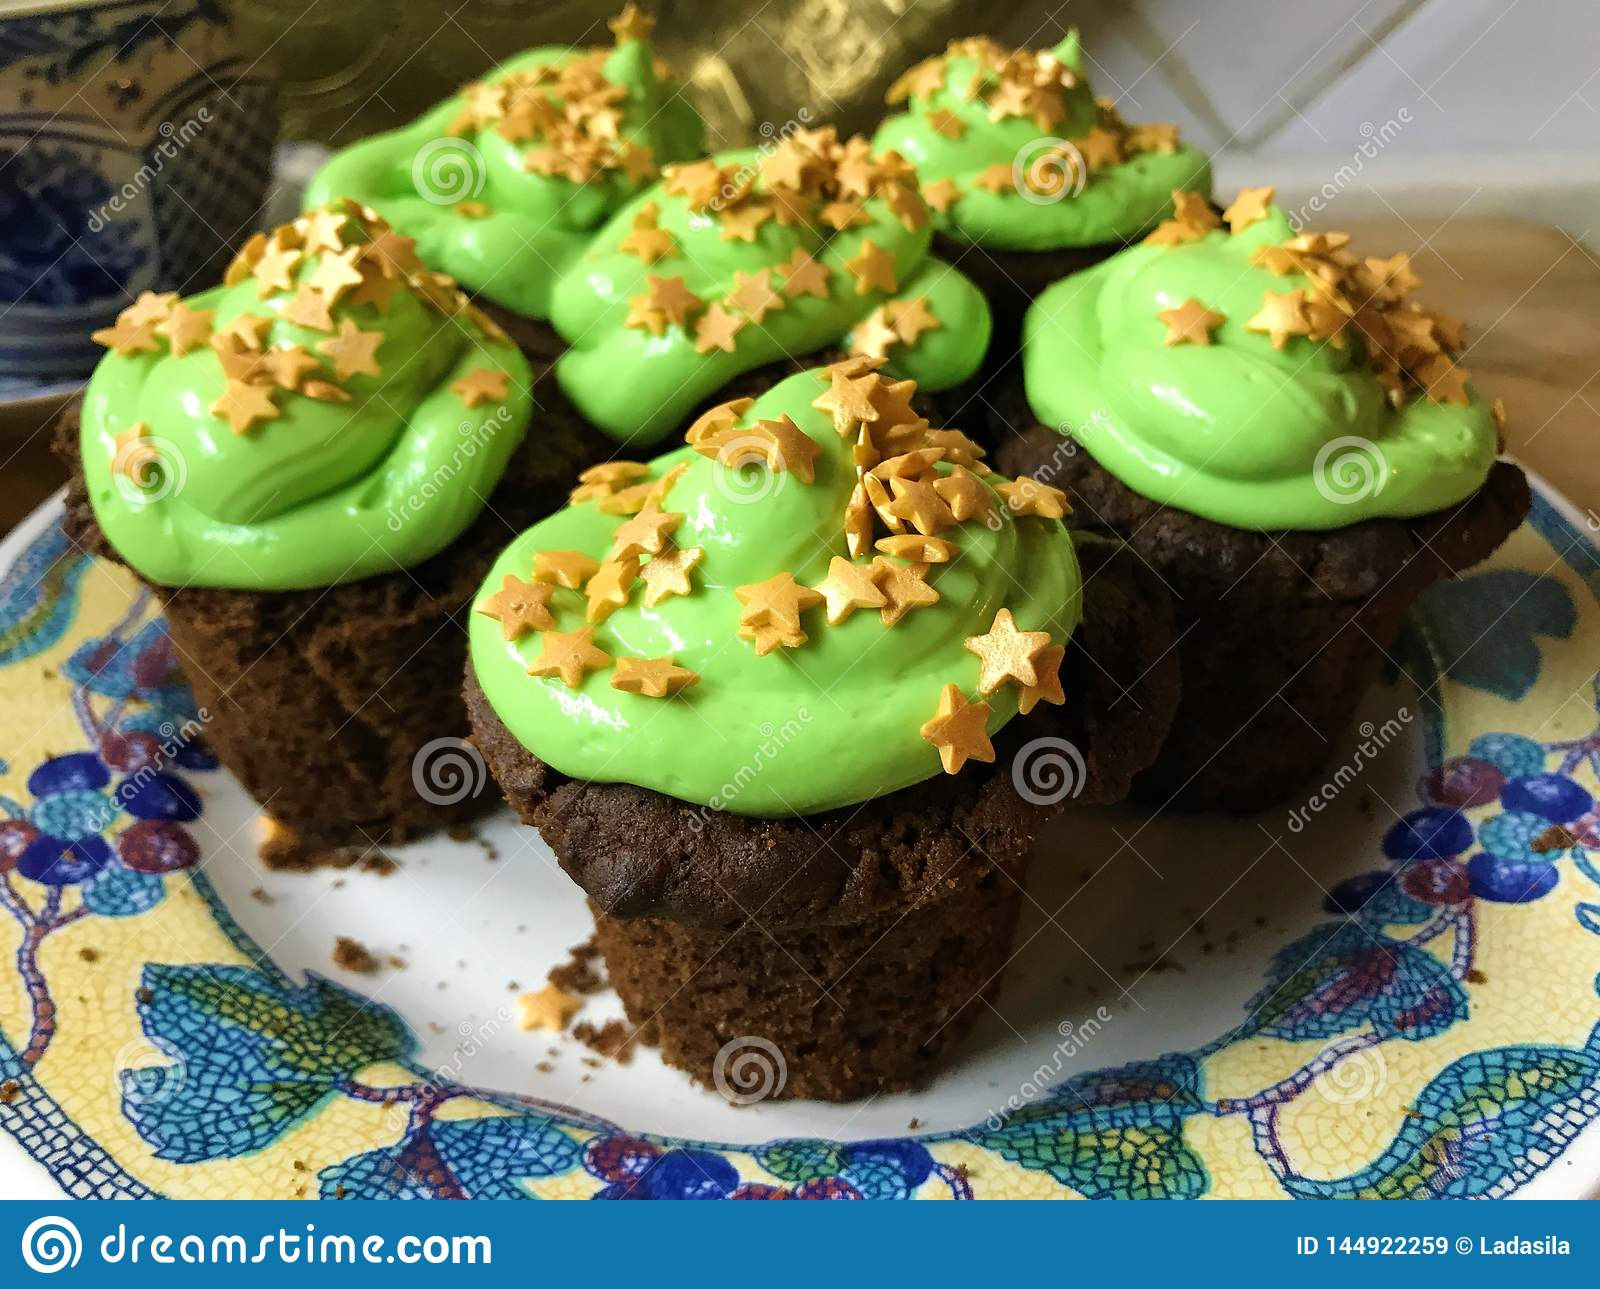 Cupcakes with green frosting and golden stars sprinkles on a white plate